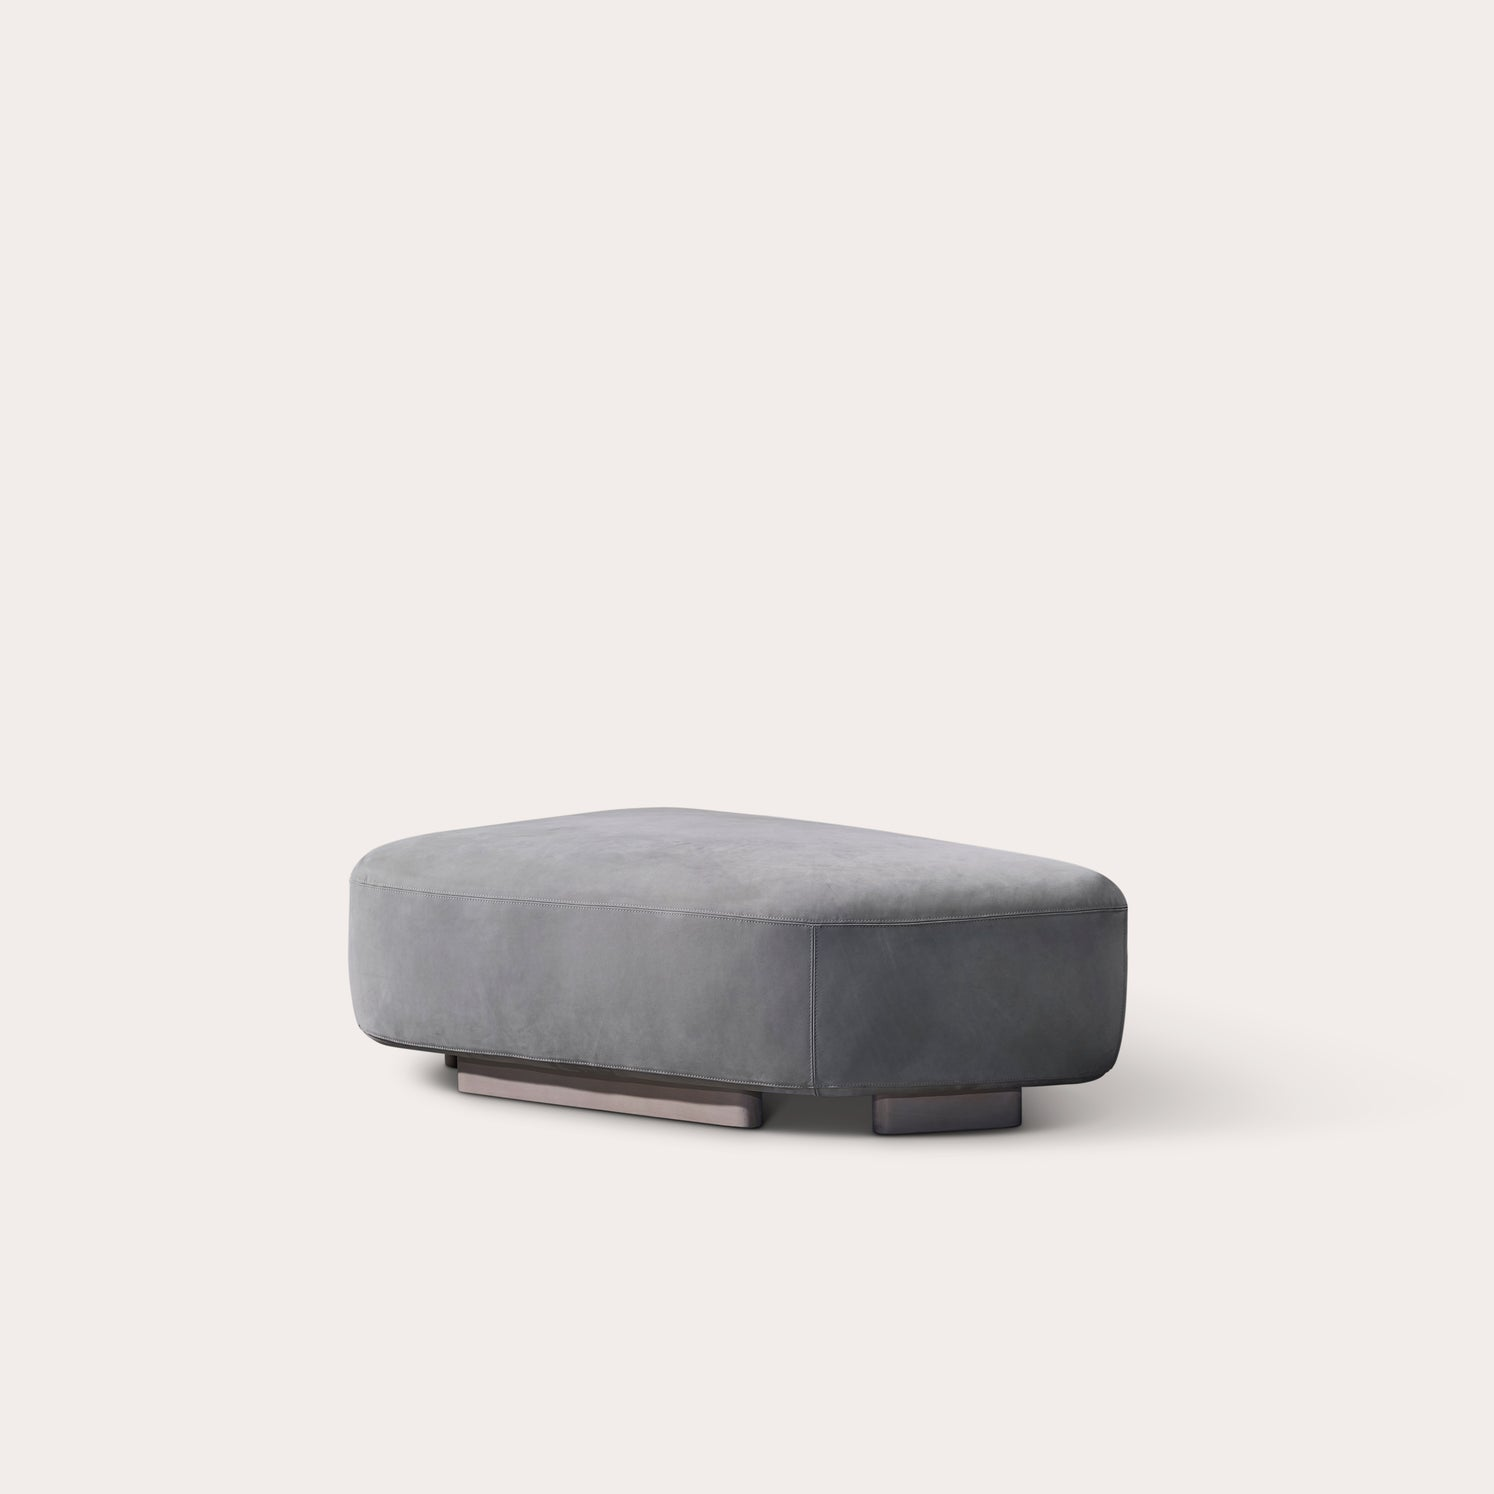 Noor Large Ottomans Piet Boon Designer Furniture Sku: 784-240-10096